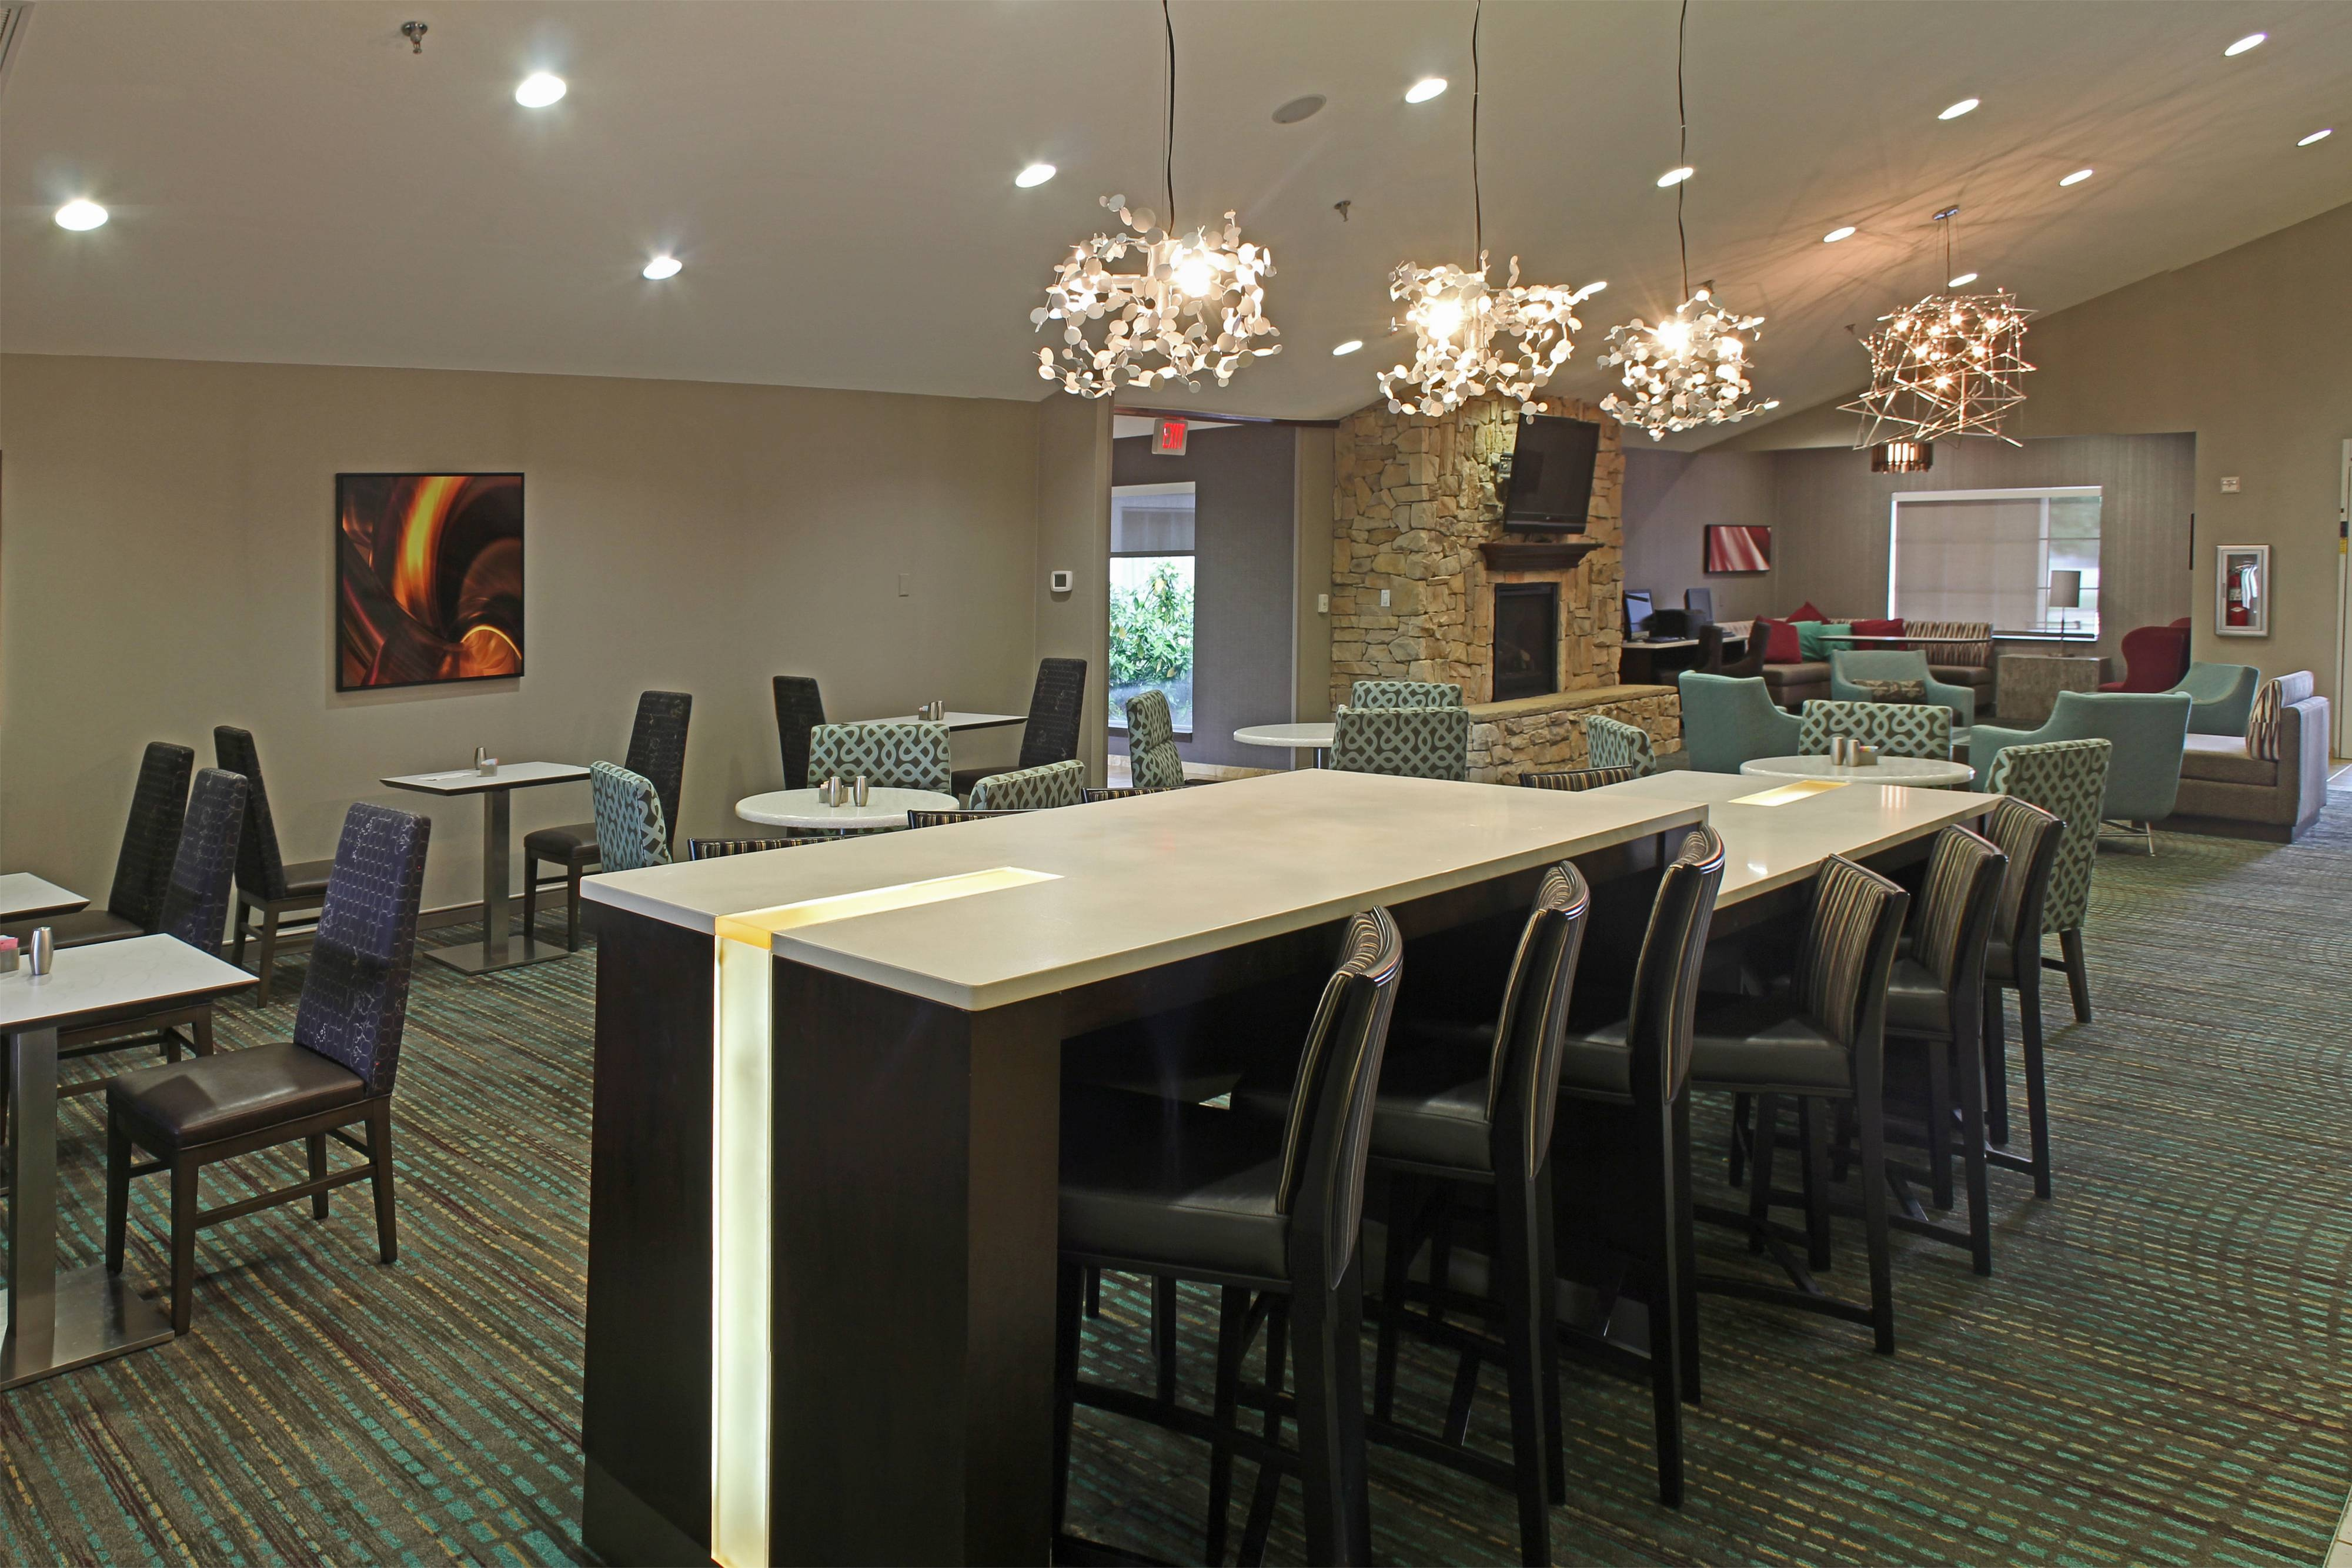 Temple Texas Hotel Breakfast Seating Area